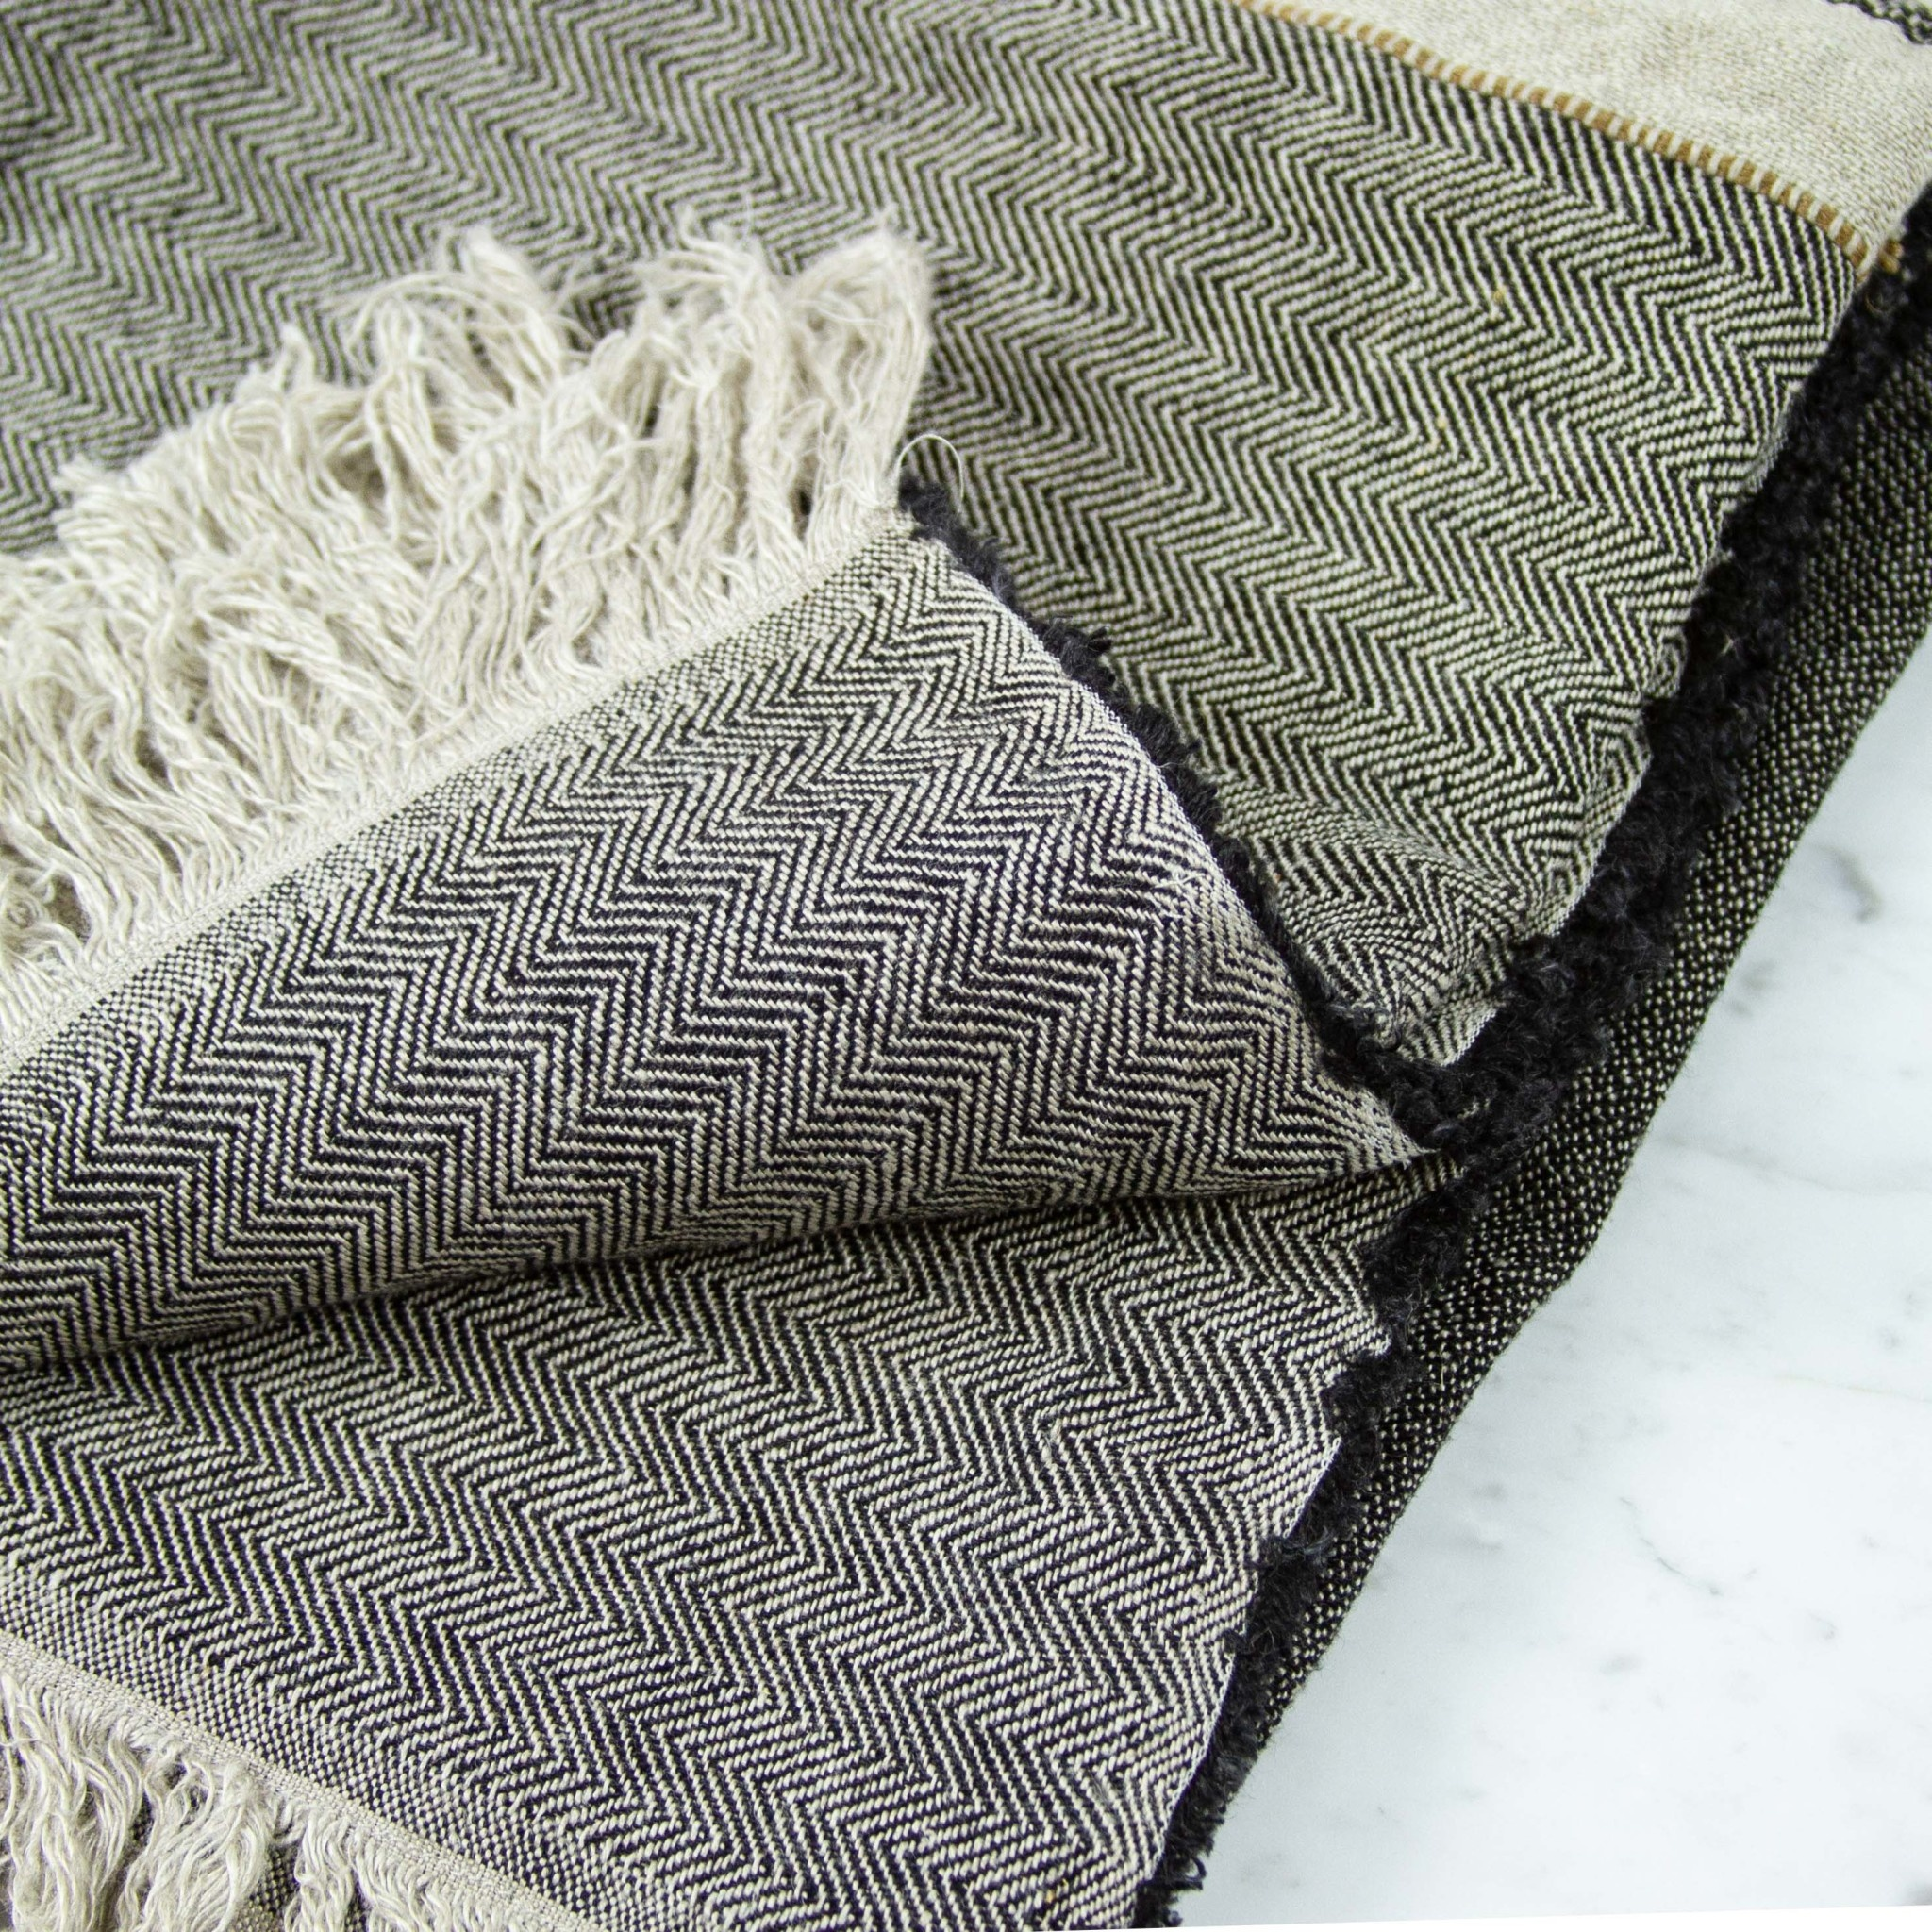 Libeco Home An exquisitely drapey Belgian Linen version of our favorite Turkish-style towel. Swoon city!